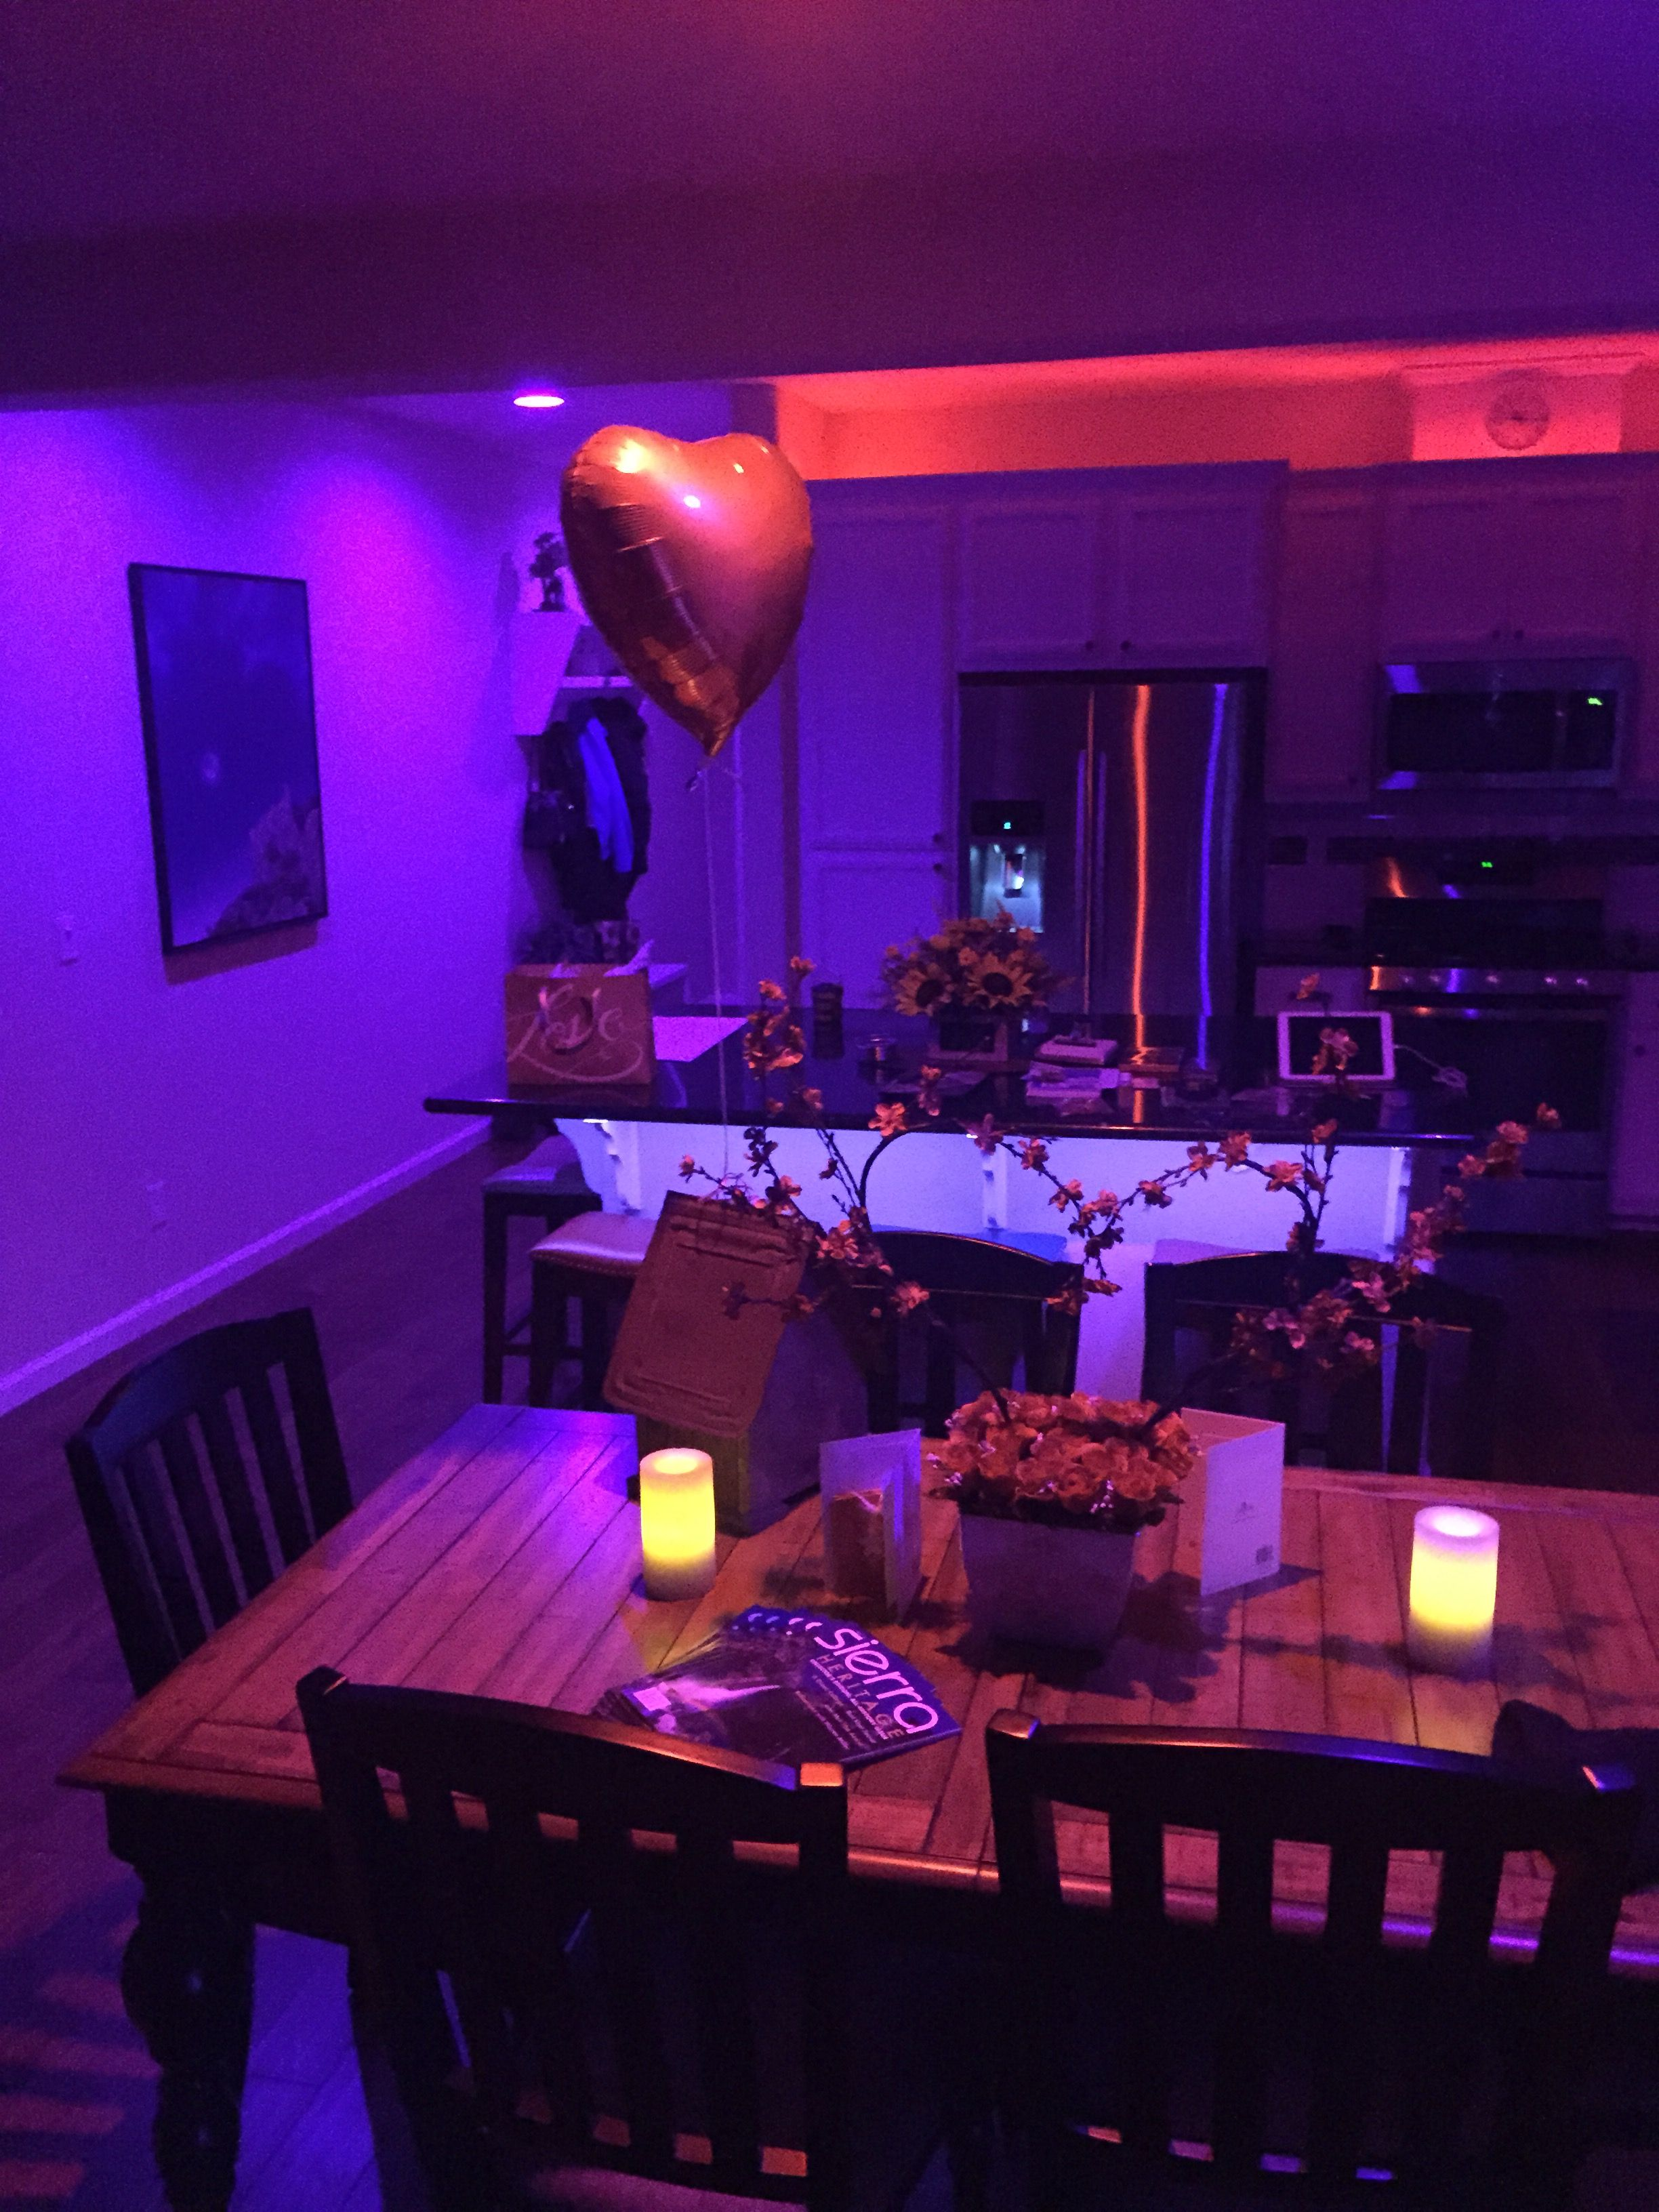 Philips Hue Schlafzimmer Lampe Our House On Valentine S Night Philips Hue Lighting Ideas In